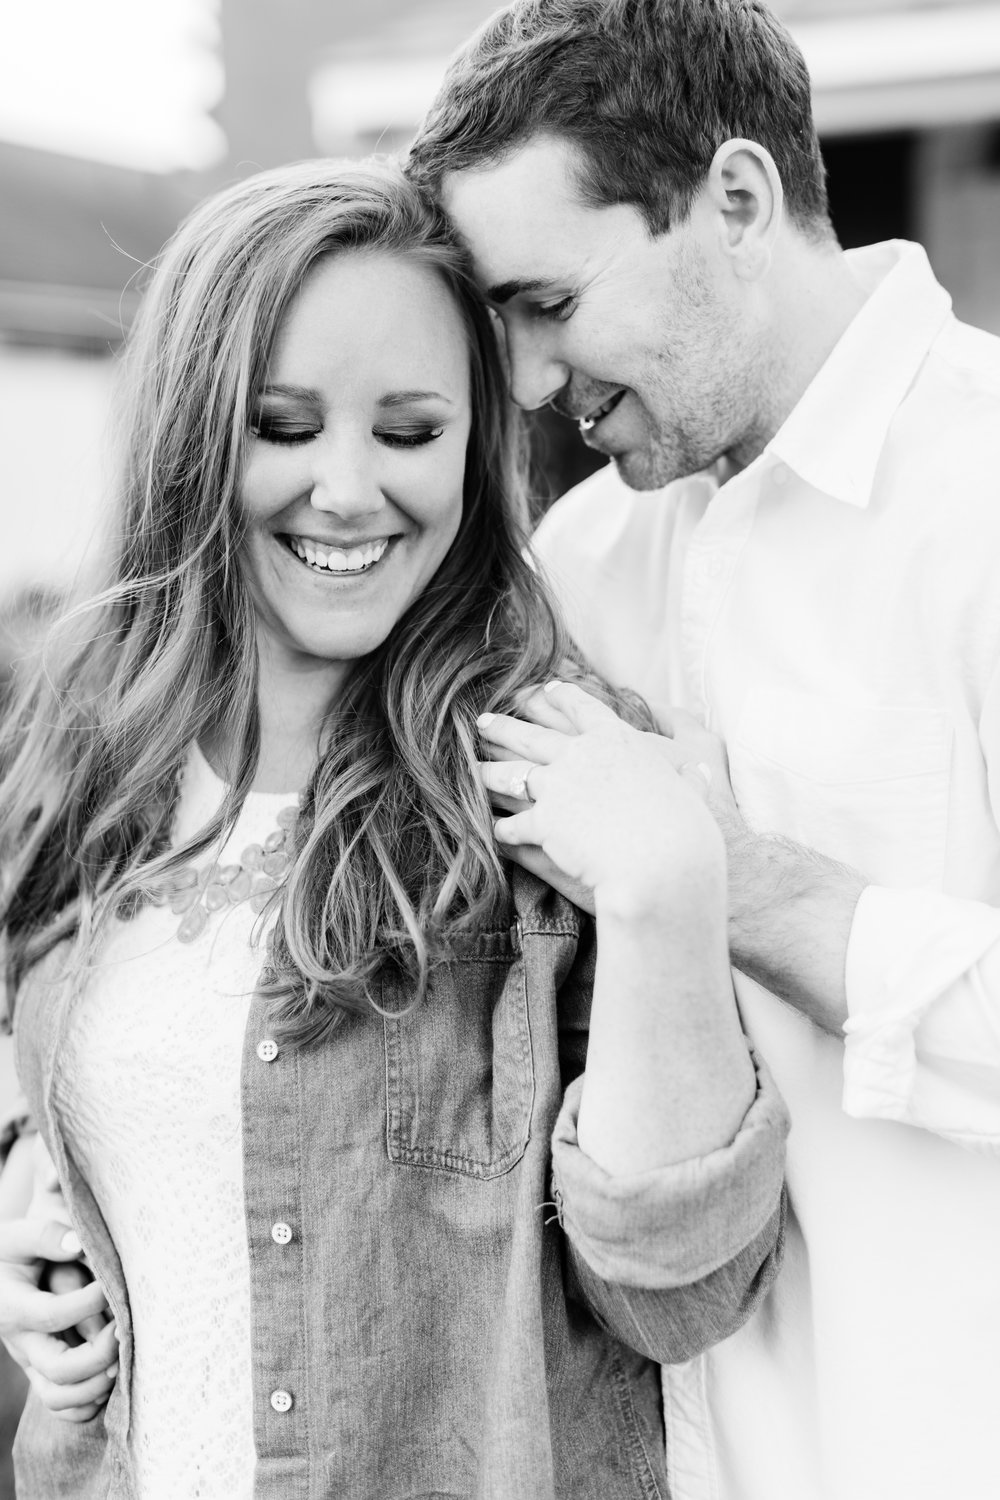 Lehigh_Valley_Engagement_Photographer-1-2.jpg